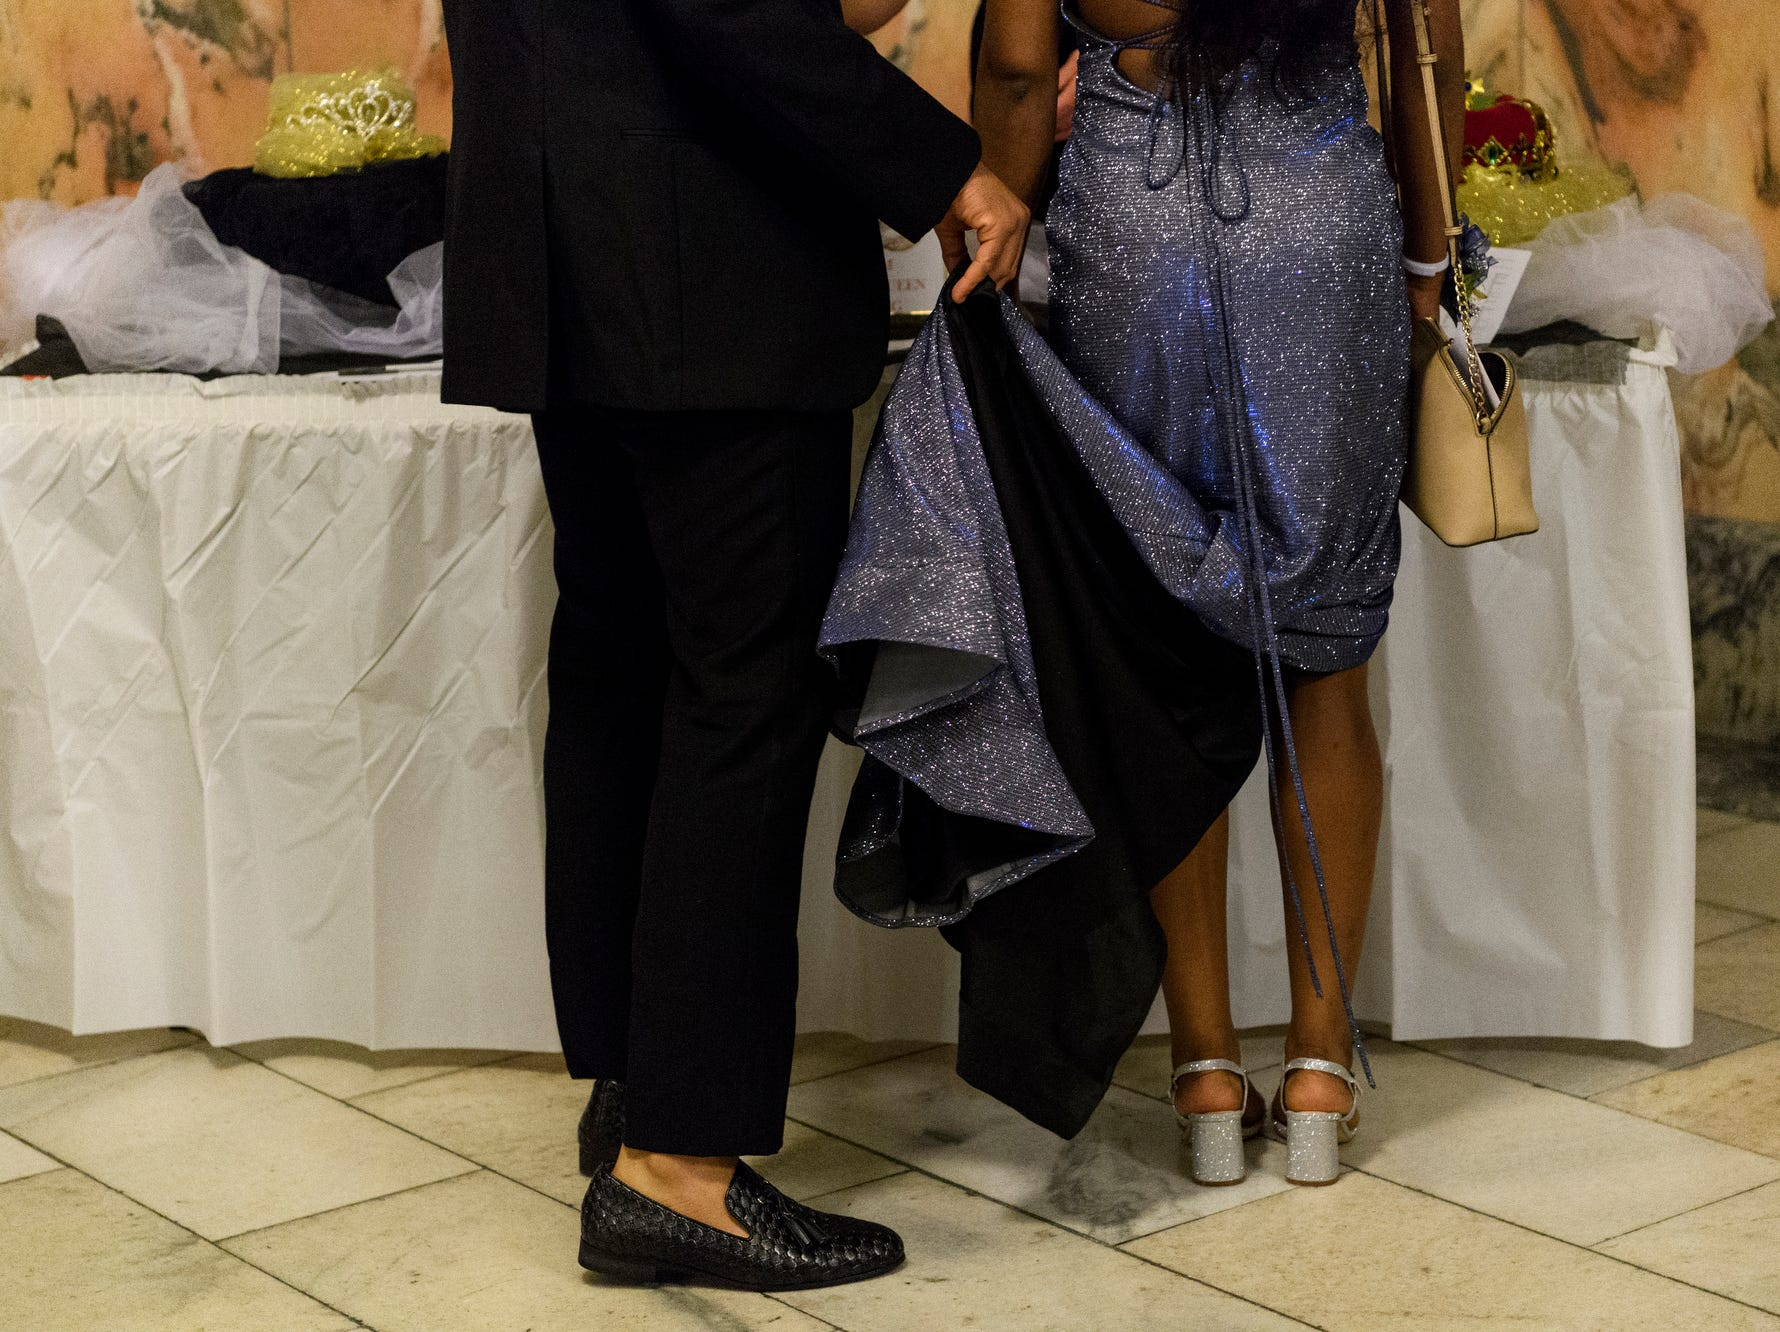 Darnell McRath Jr. holds his date Breasia Williams' dress as they prepare to vote for prom king and queen during dance at the Old Vanderburgh County Courthouse in downtown Evansville, Ind., Saturday, April 6, 2019.